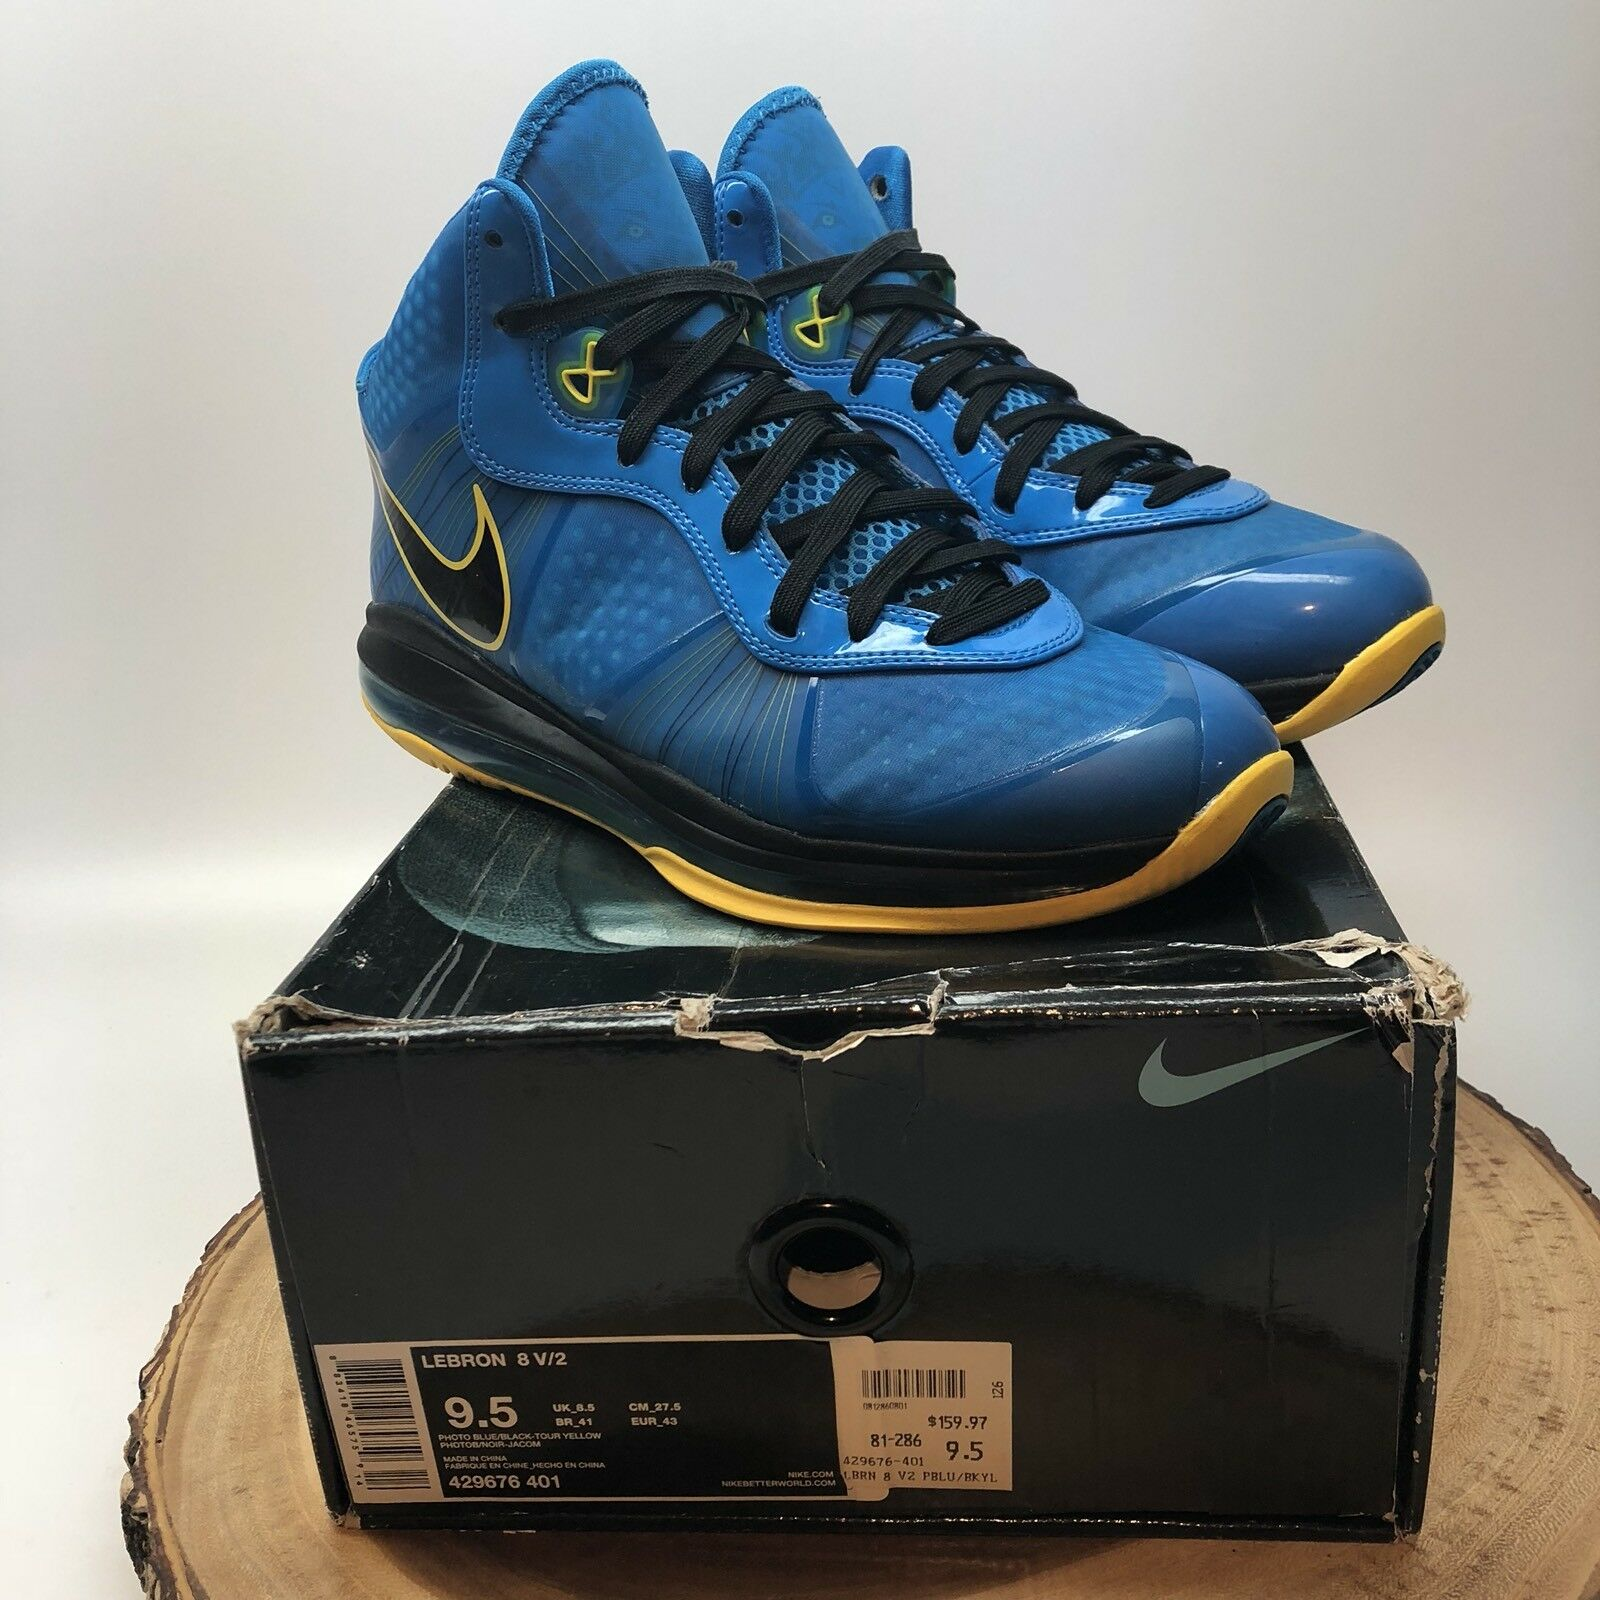 Nike Air Max LEBRON VIII 8 V/2 ENTOURAGE PHOTO BLUE BLACK YELLOW 429676-401 9.5 New shoes for men and women, limited time discount